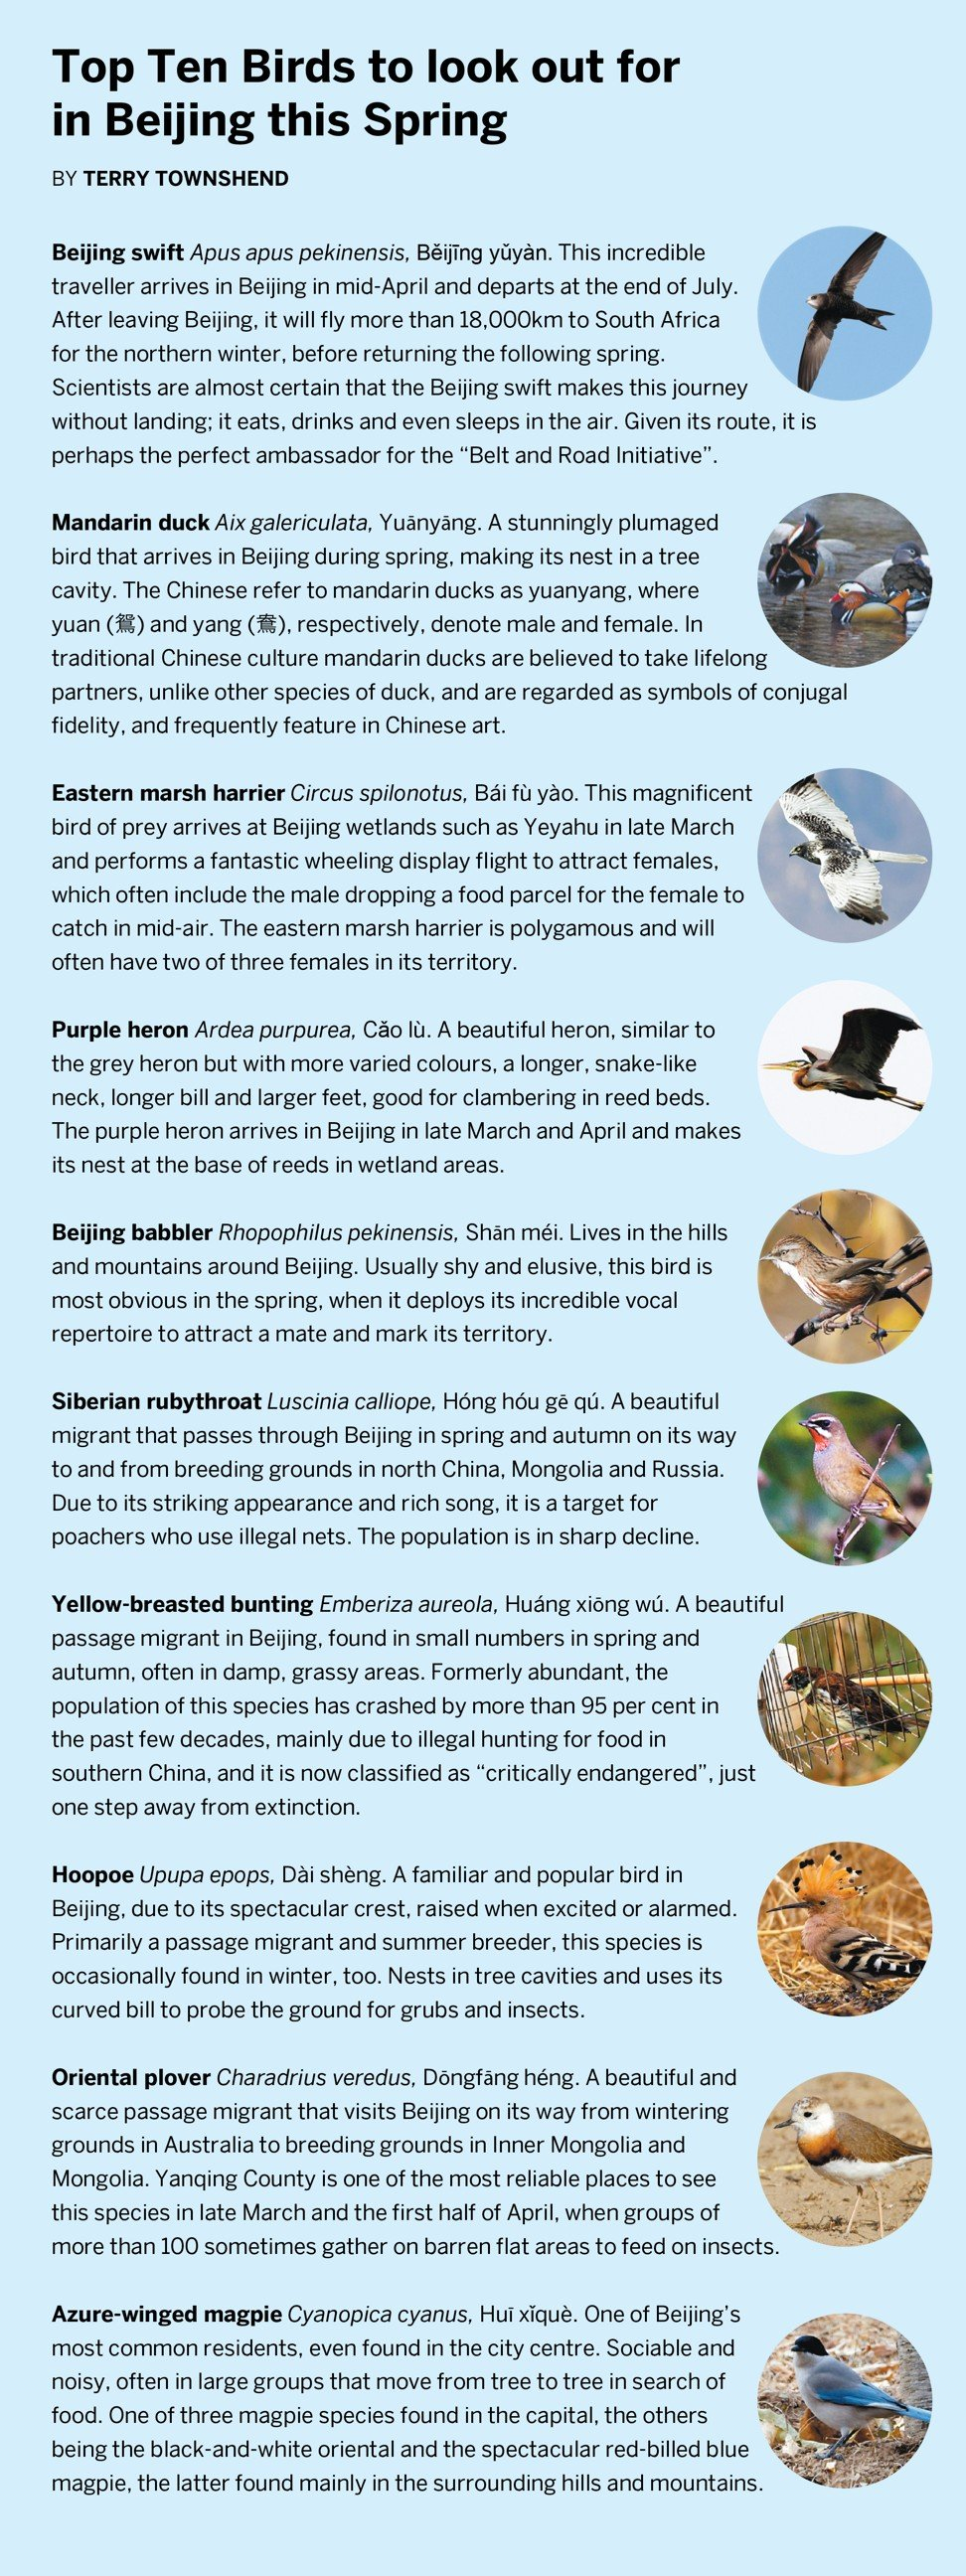 Birds of Beijing: China's capital is important point on